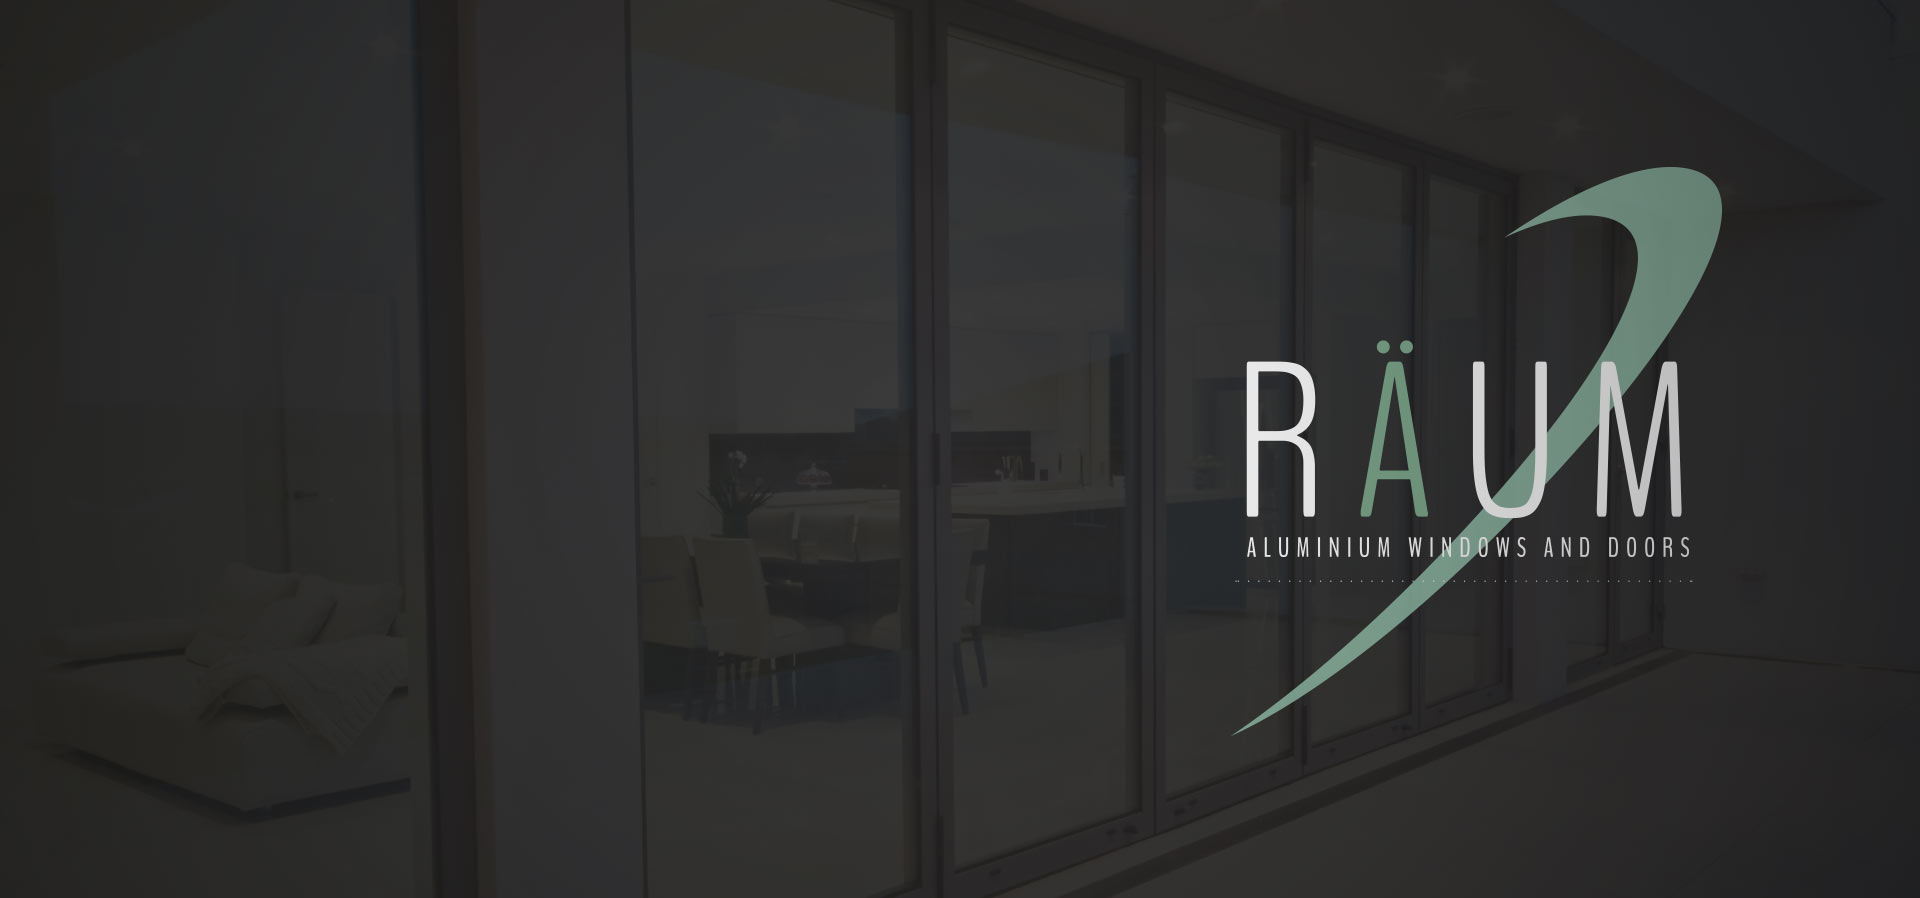 Raum premium aluminium windows and doors